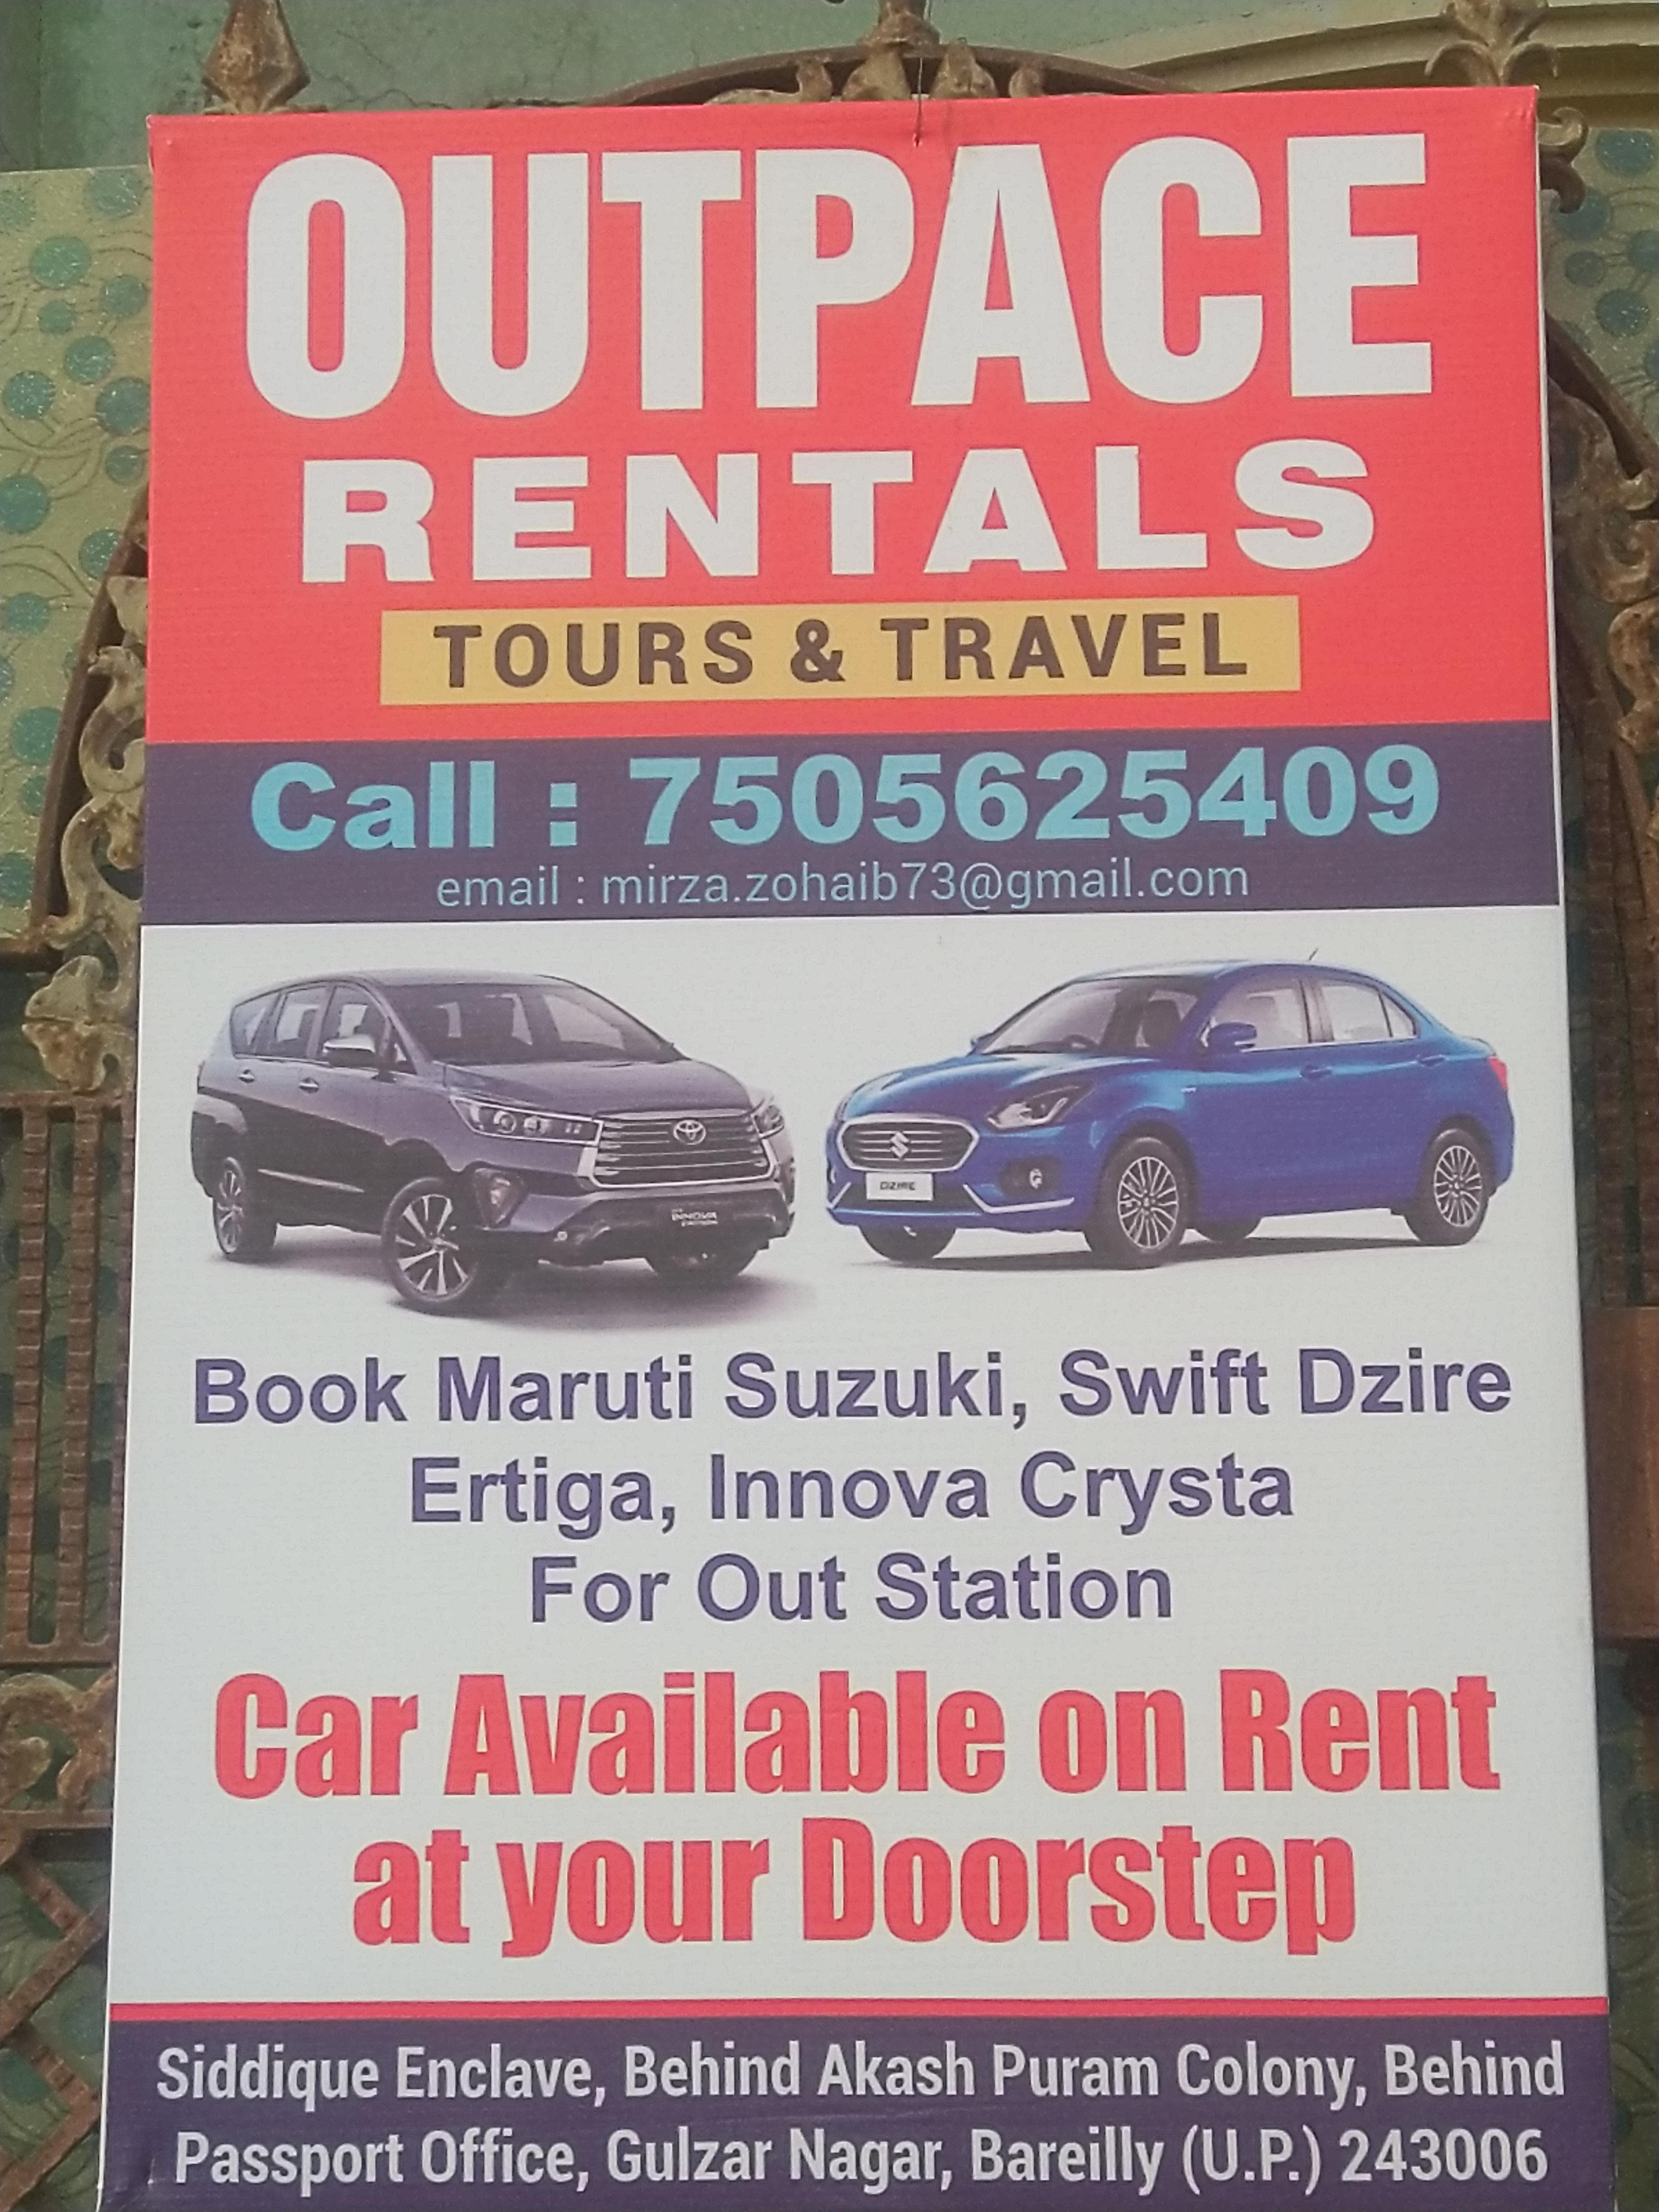 Outpace rentals tours & travel